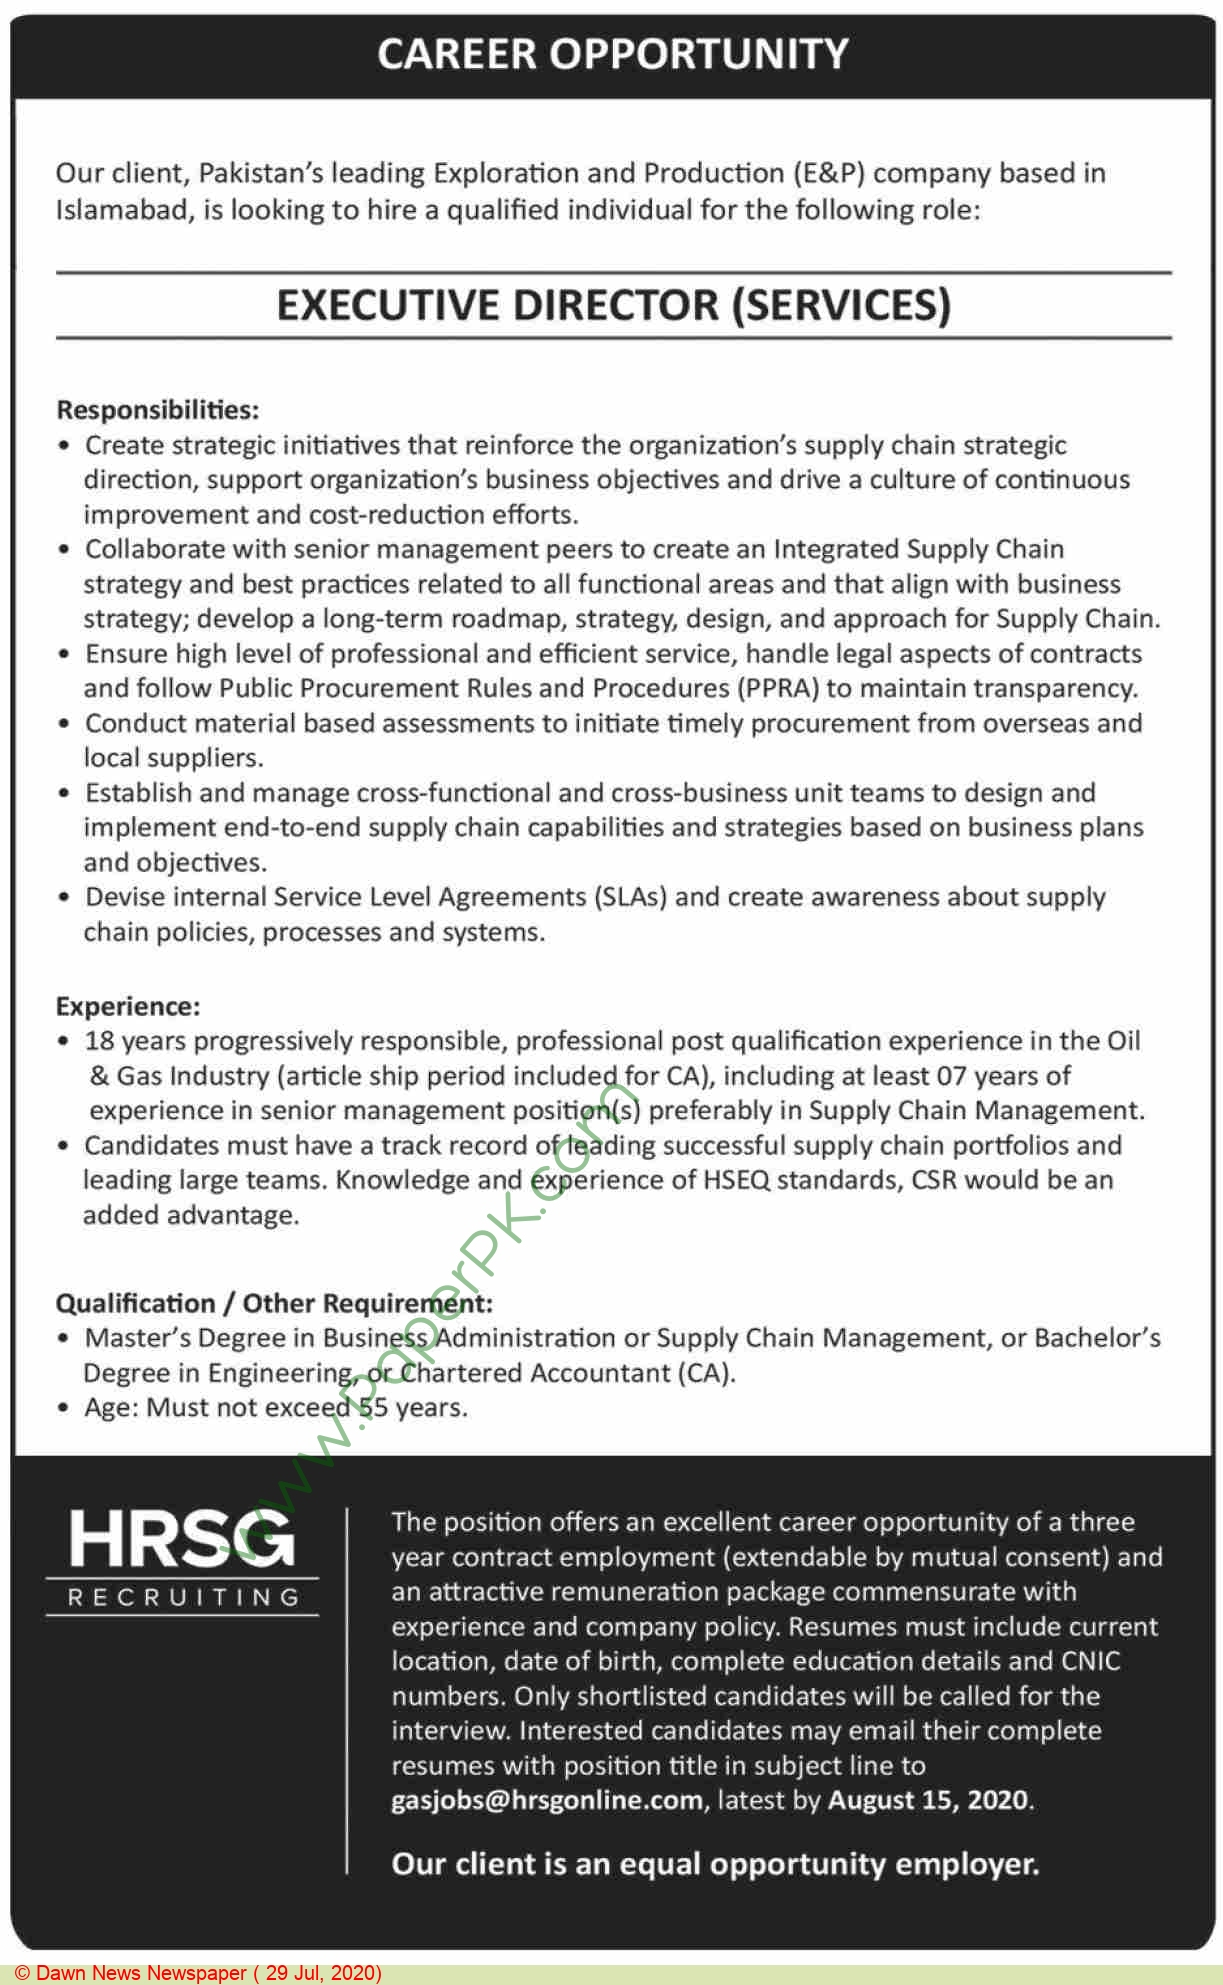 Hrsg Recruiting jobs newspaper ad for Executive Director Service in Islamabad